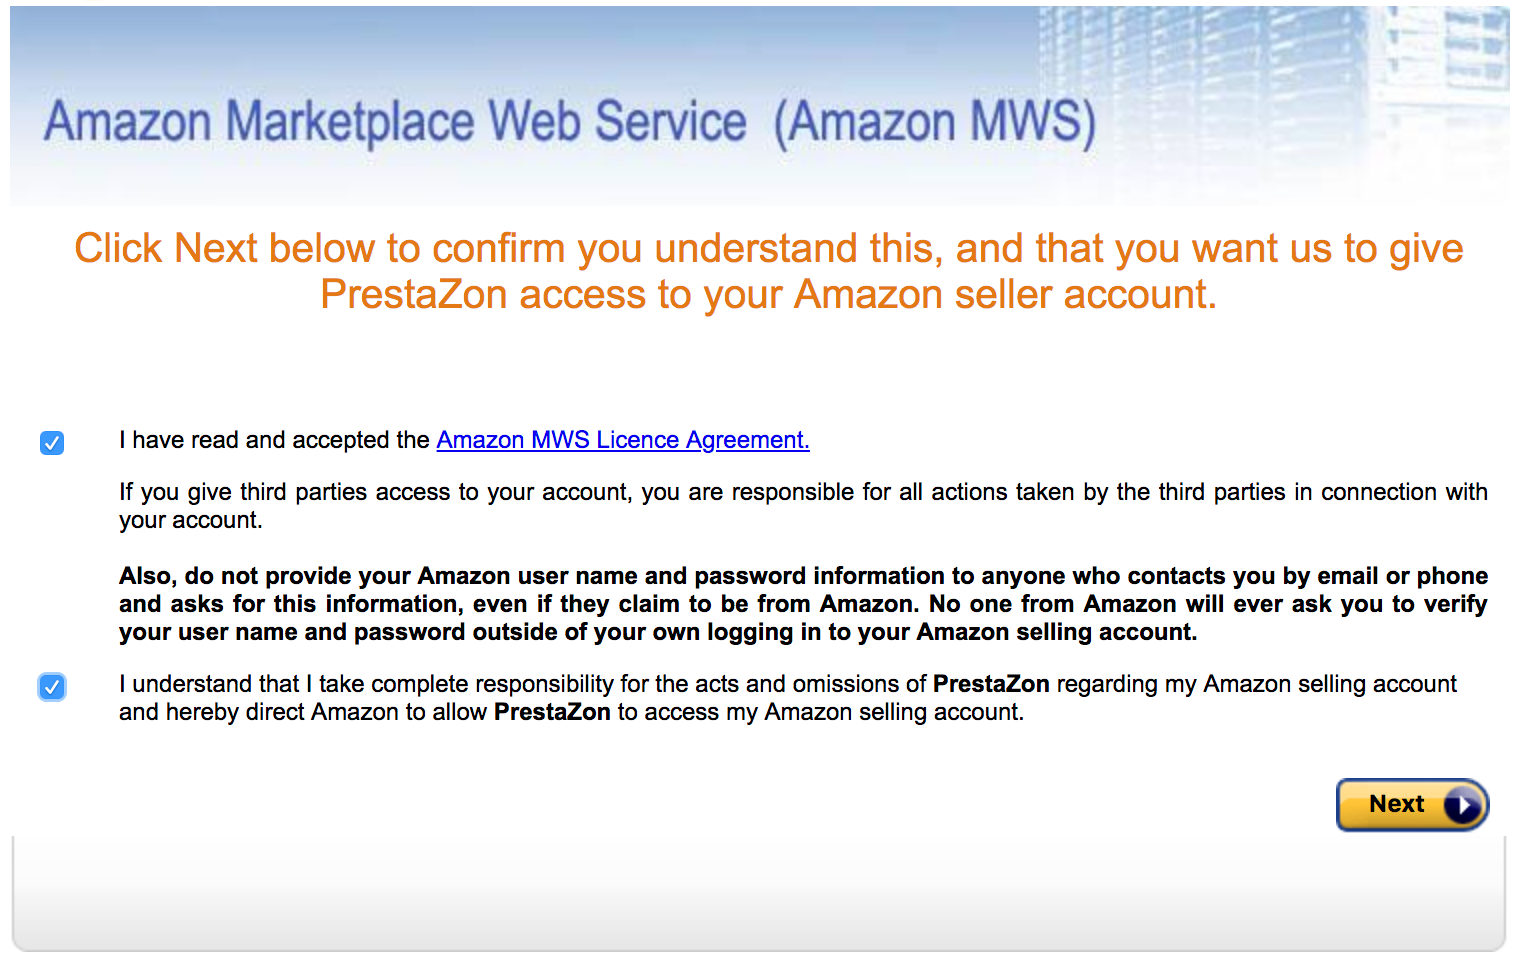 PrestaShop Amazon module — Adding your Amazon Account